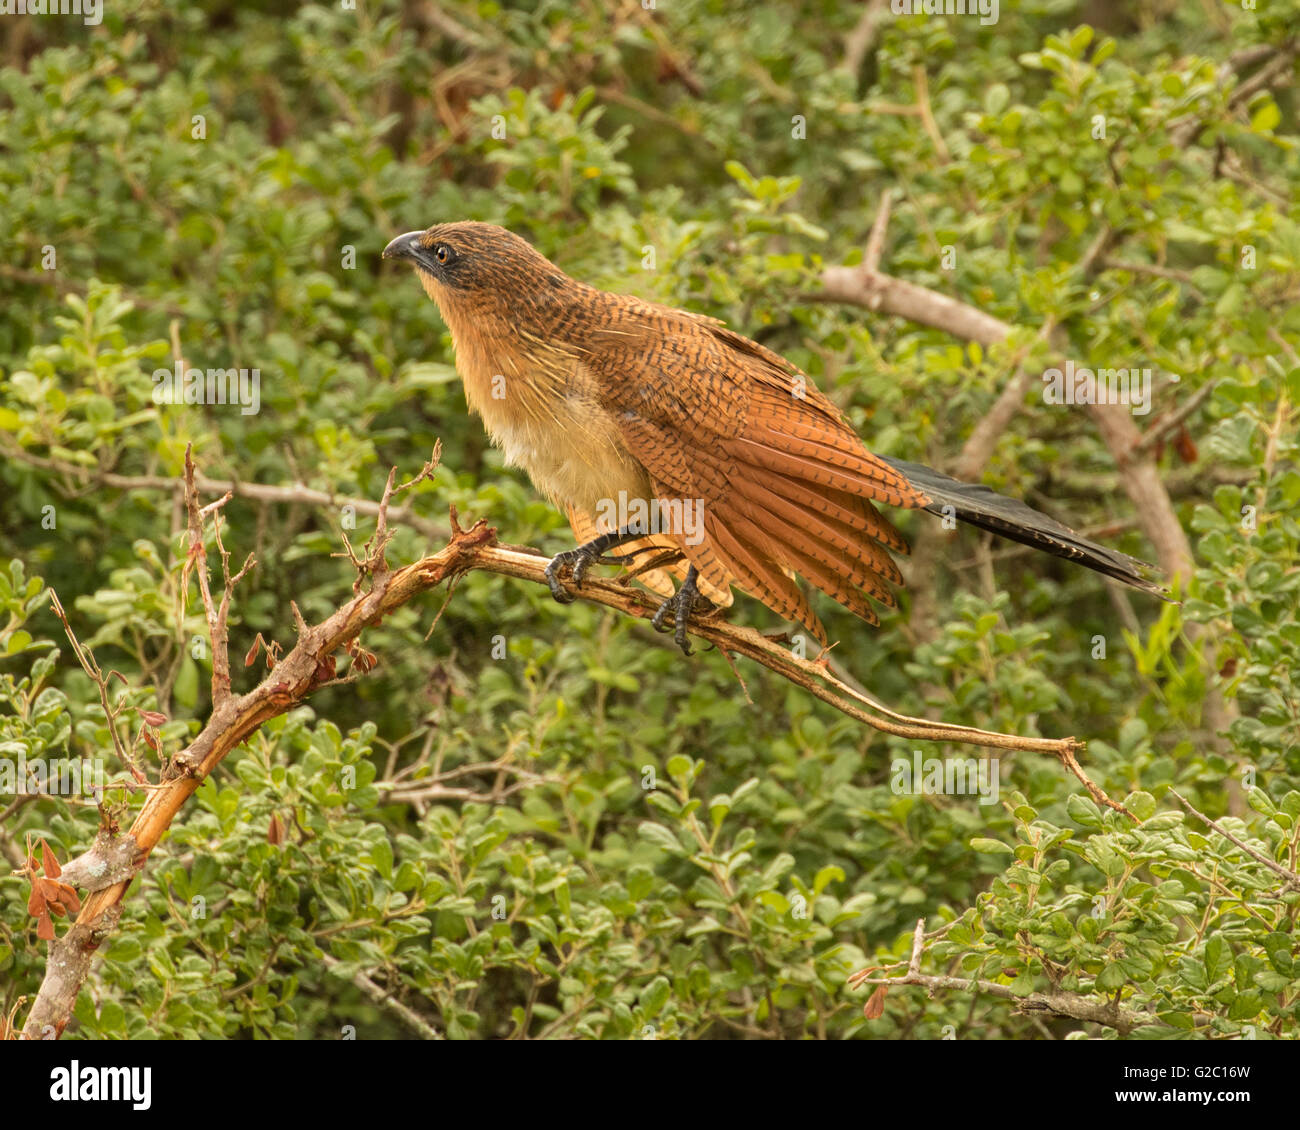 The White Browed Coucal (Centropus burchelli) - Stock Image